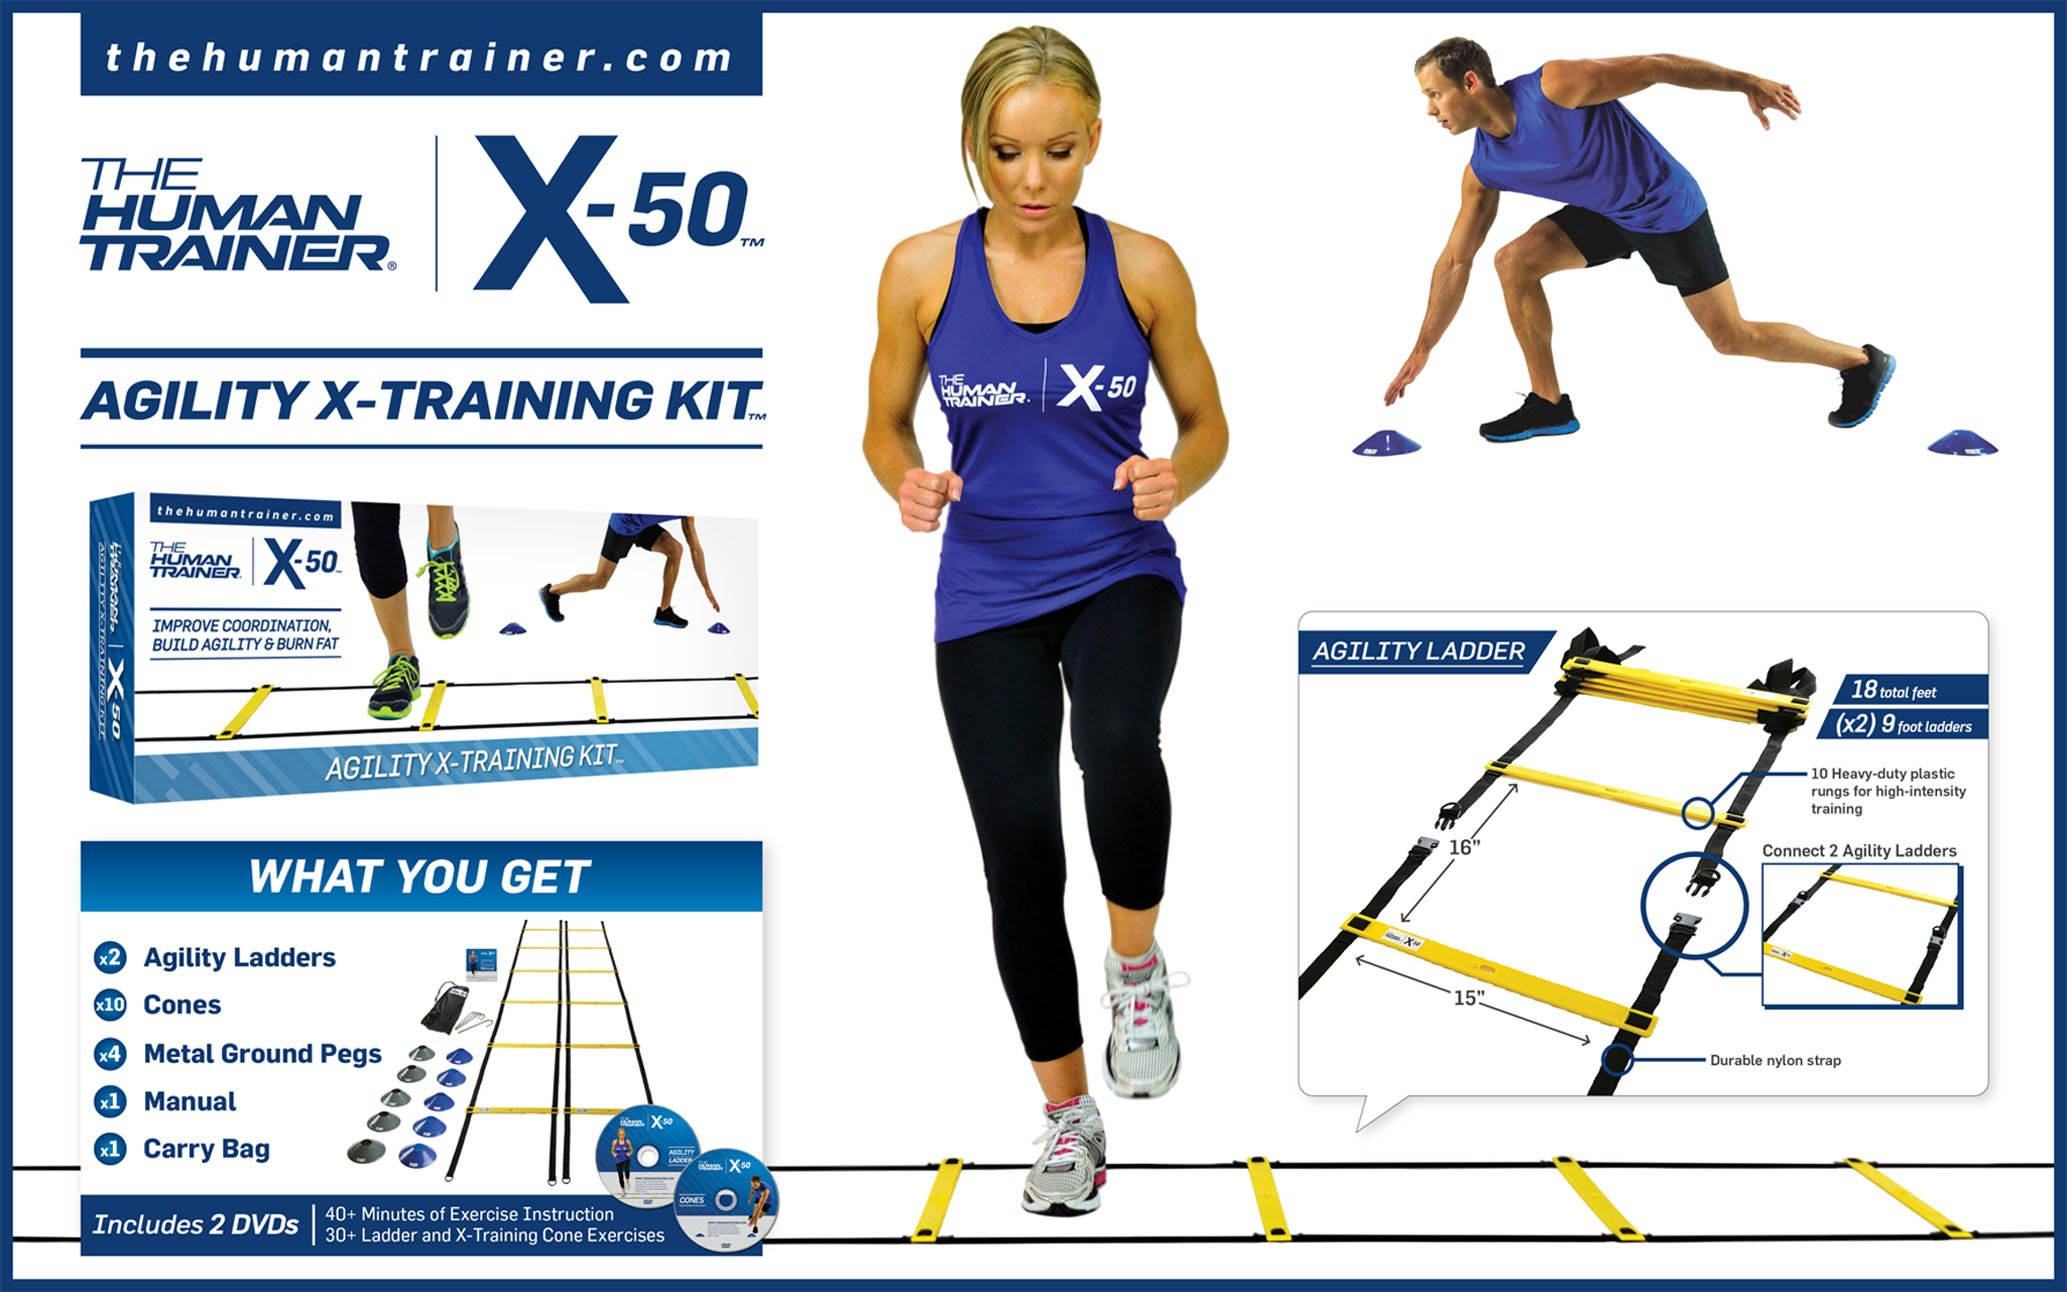 The Human Trainer X-50 Agility X-training Kit (Includes: 2x 9 Foot Agility Ladders, 10x X-training Cones, X2 Dvds, Full Colour Exercise Manual)